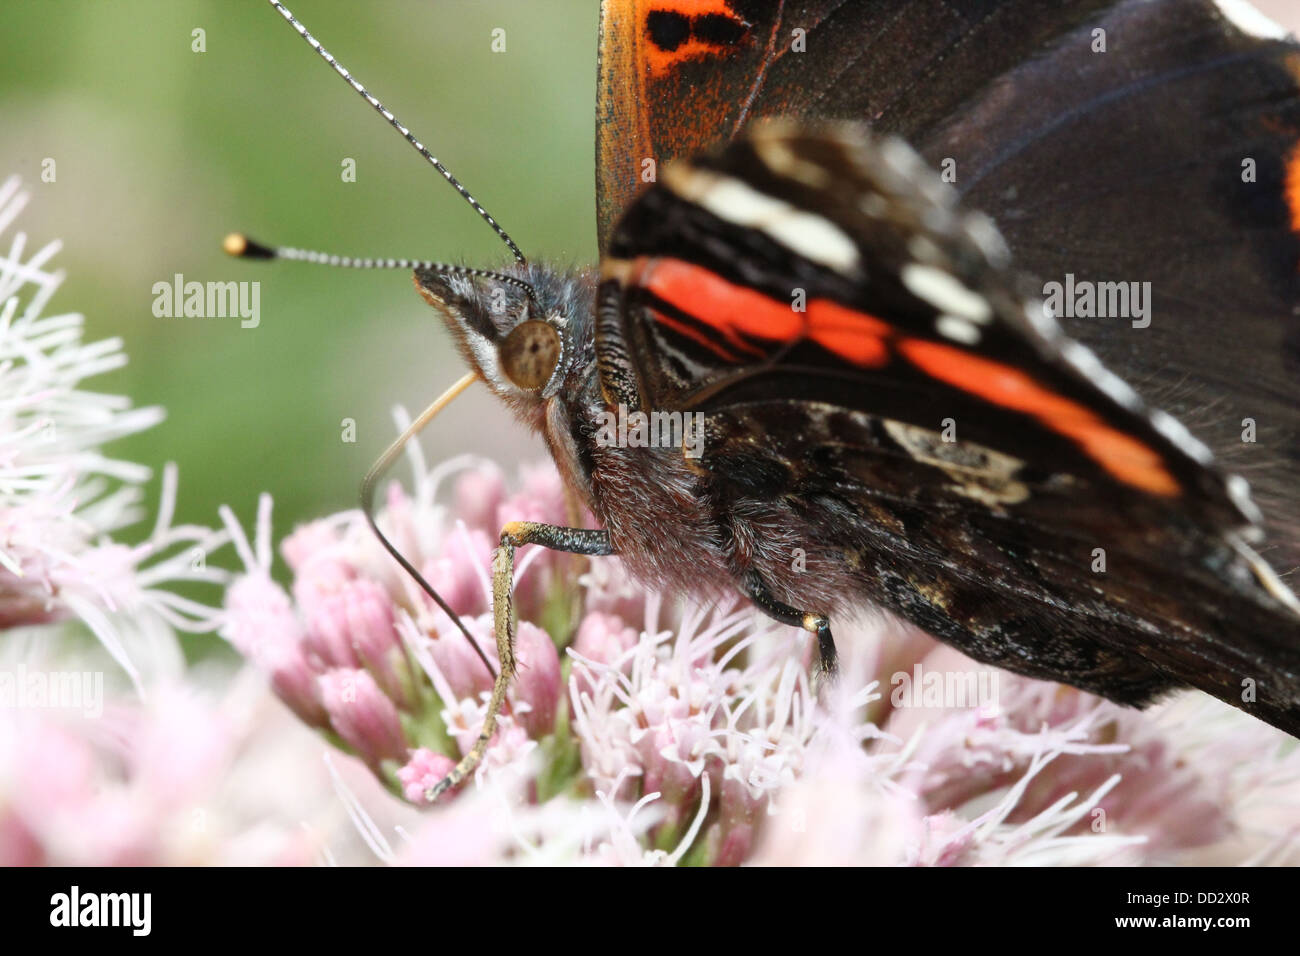 Extreme close-up of the head and upper body of  a Red admiral butterfly (vanessa atalanta) foraging on a flower - Stock Image